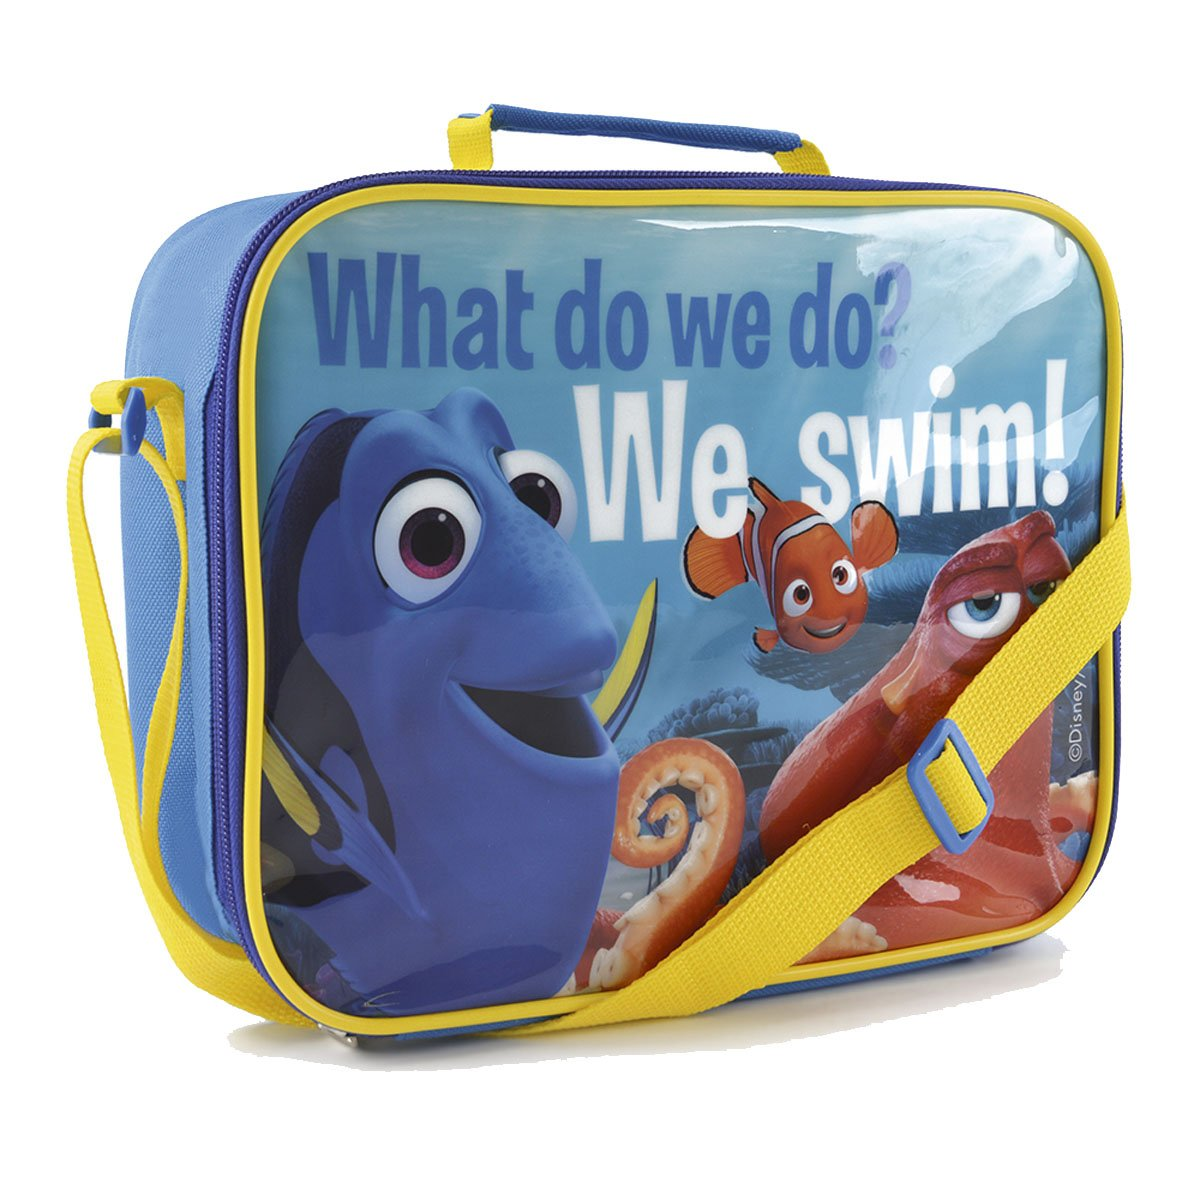 IMTD Boys Disney Finding Dory The Movie Marlin Nemo Lunchbag Back to School Insulated Lunch Picnic Bag Finding Dory Lunch Bag